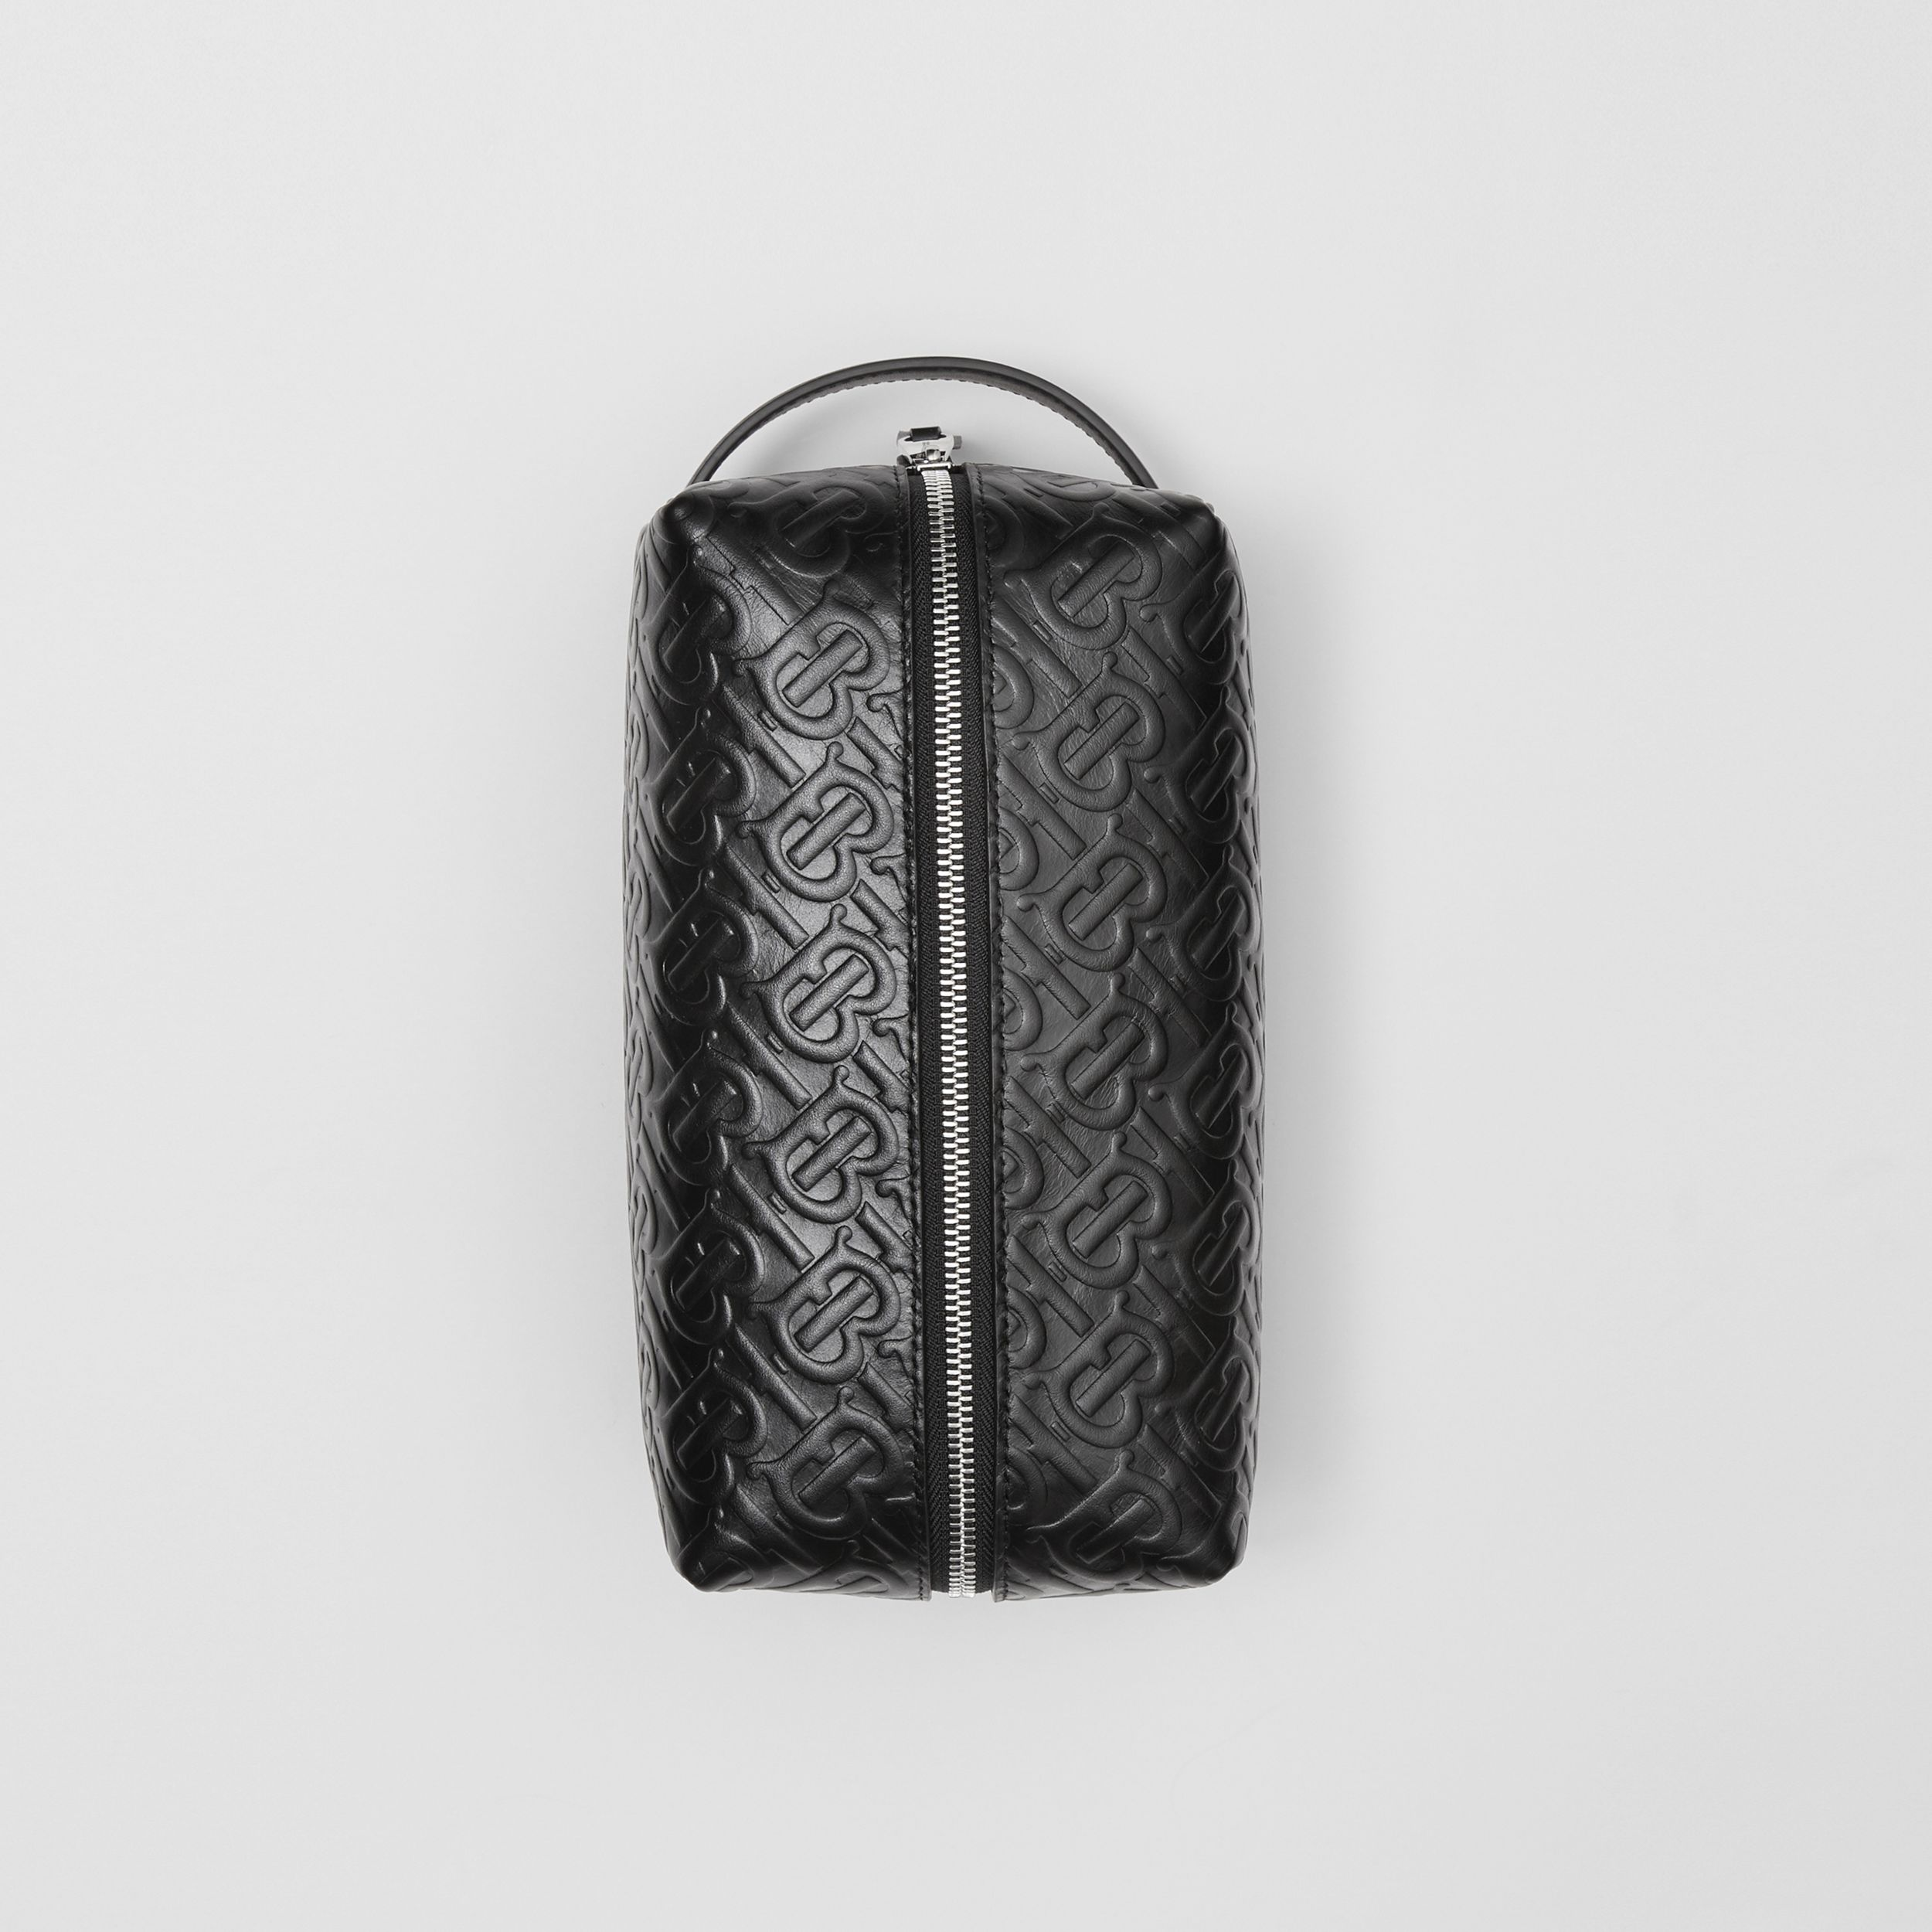 Monogram Leather Travel Pouch in Black - Men | Burberry - 4